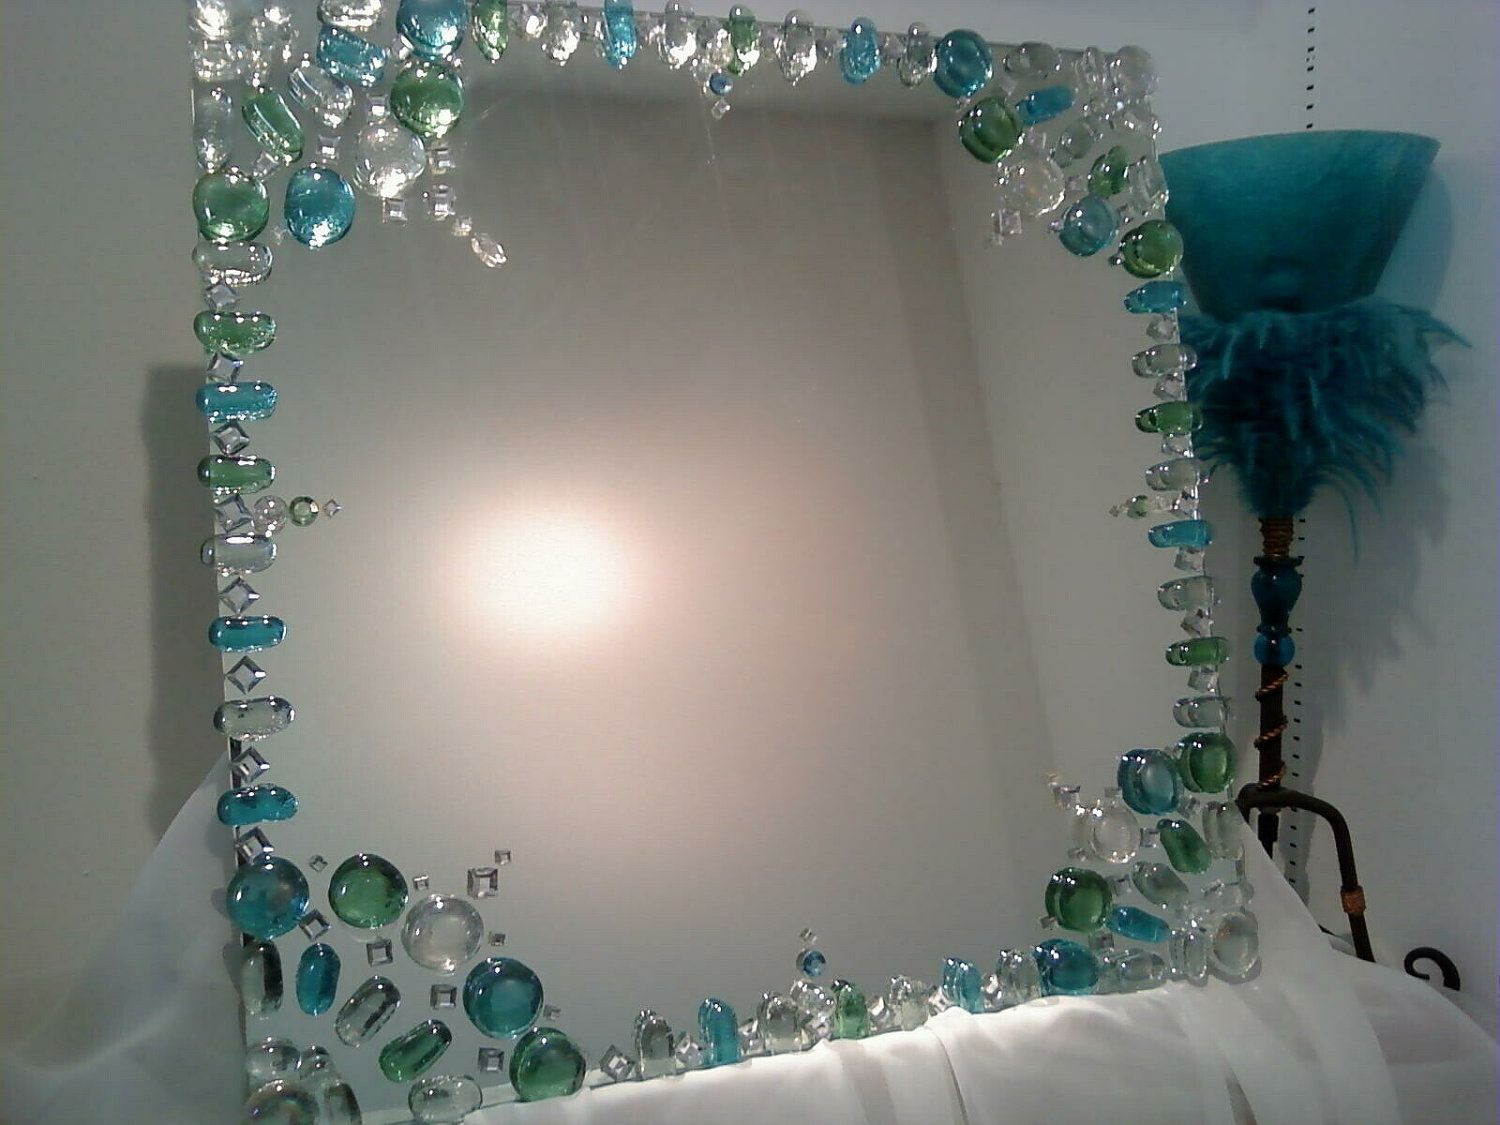 mirror design idea decorating the edge with gems instead of frames - Decorate Mirror Frame